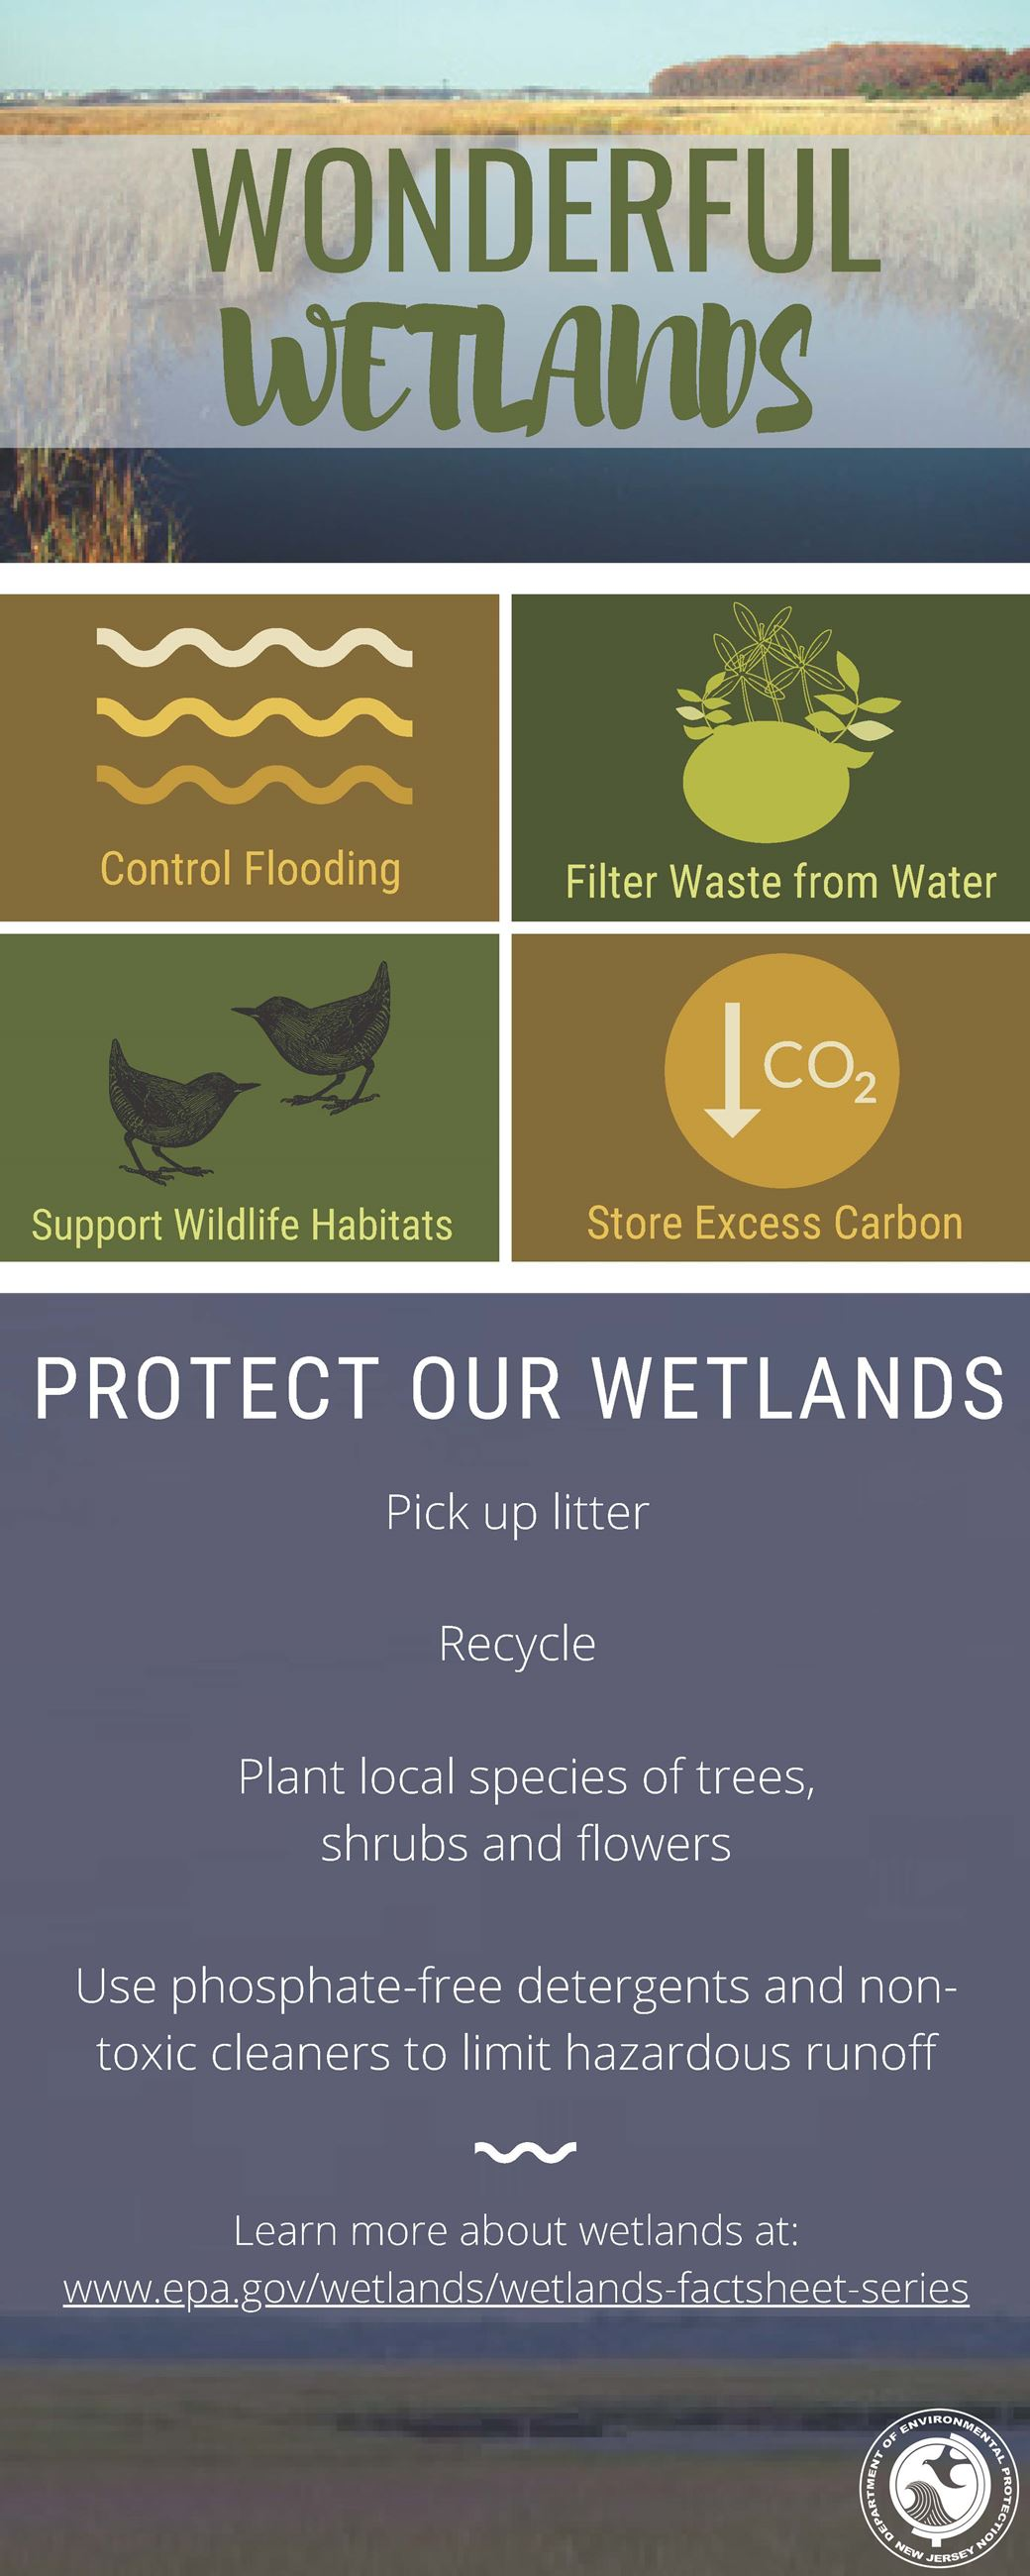 Wonderful Wetlands Infographic Opens in new window